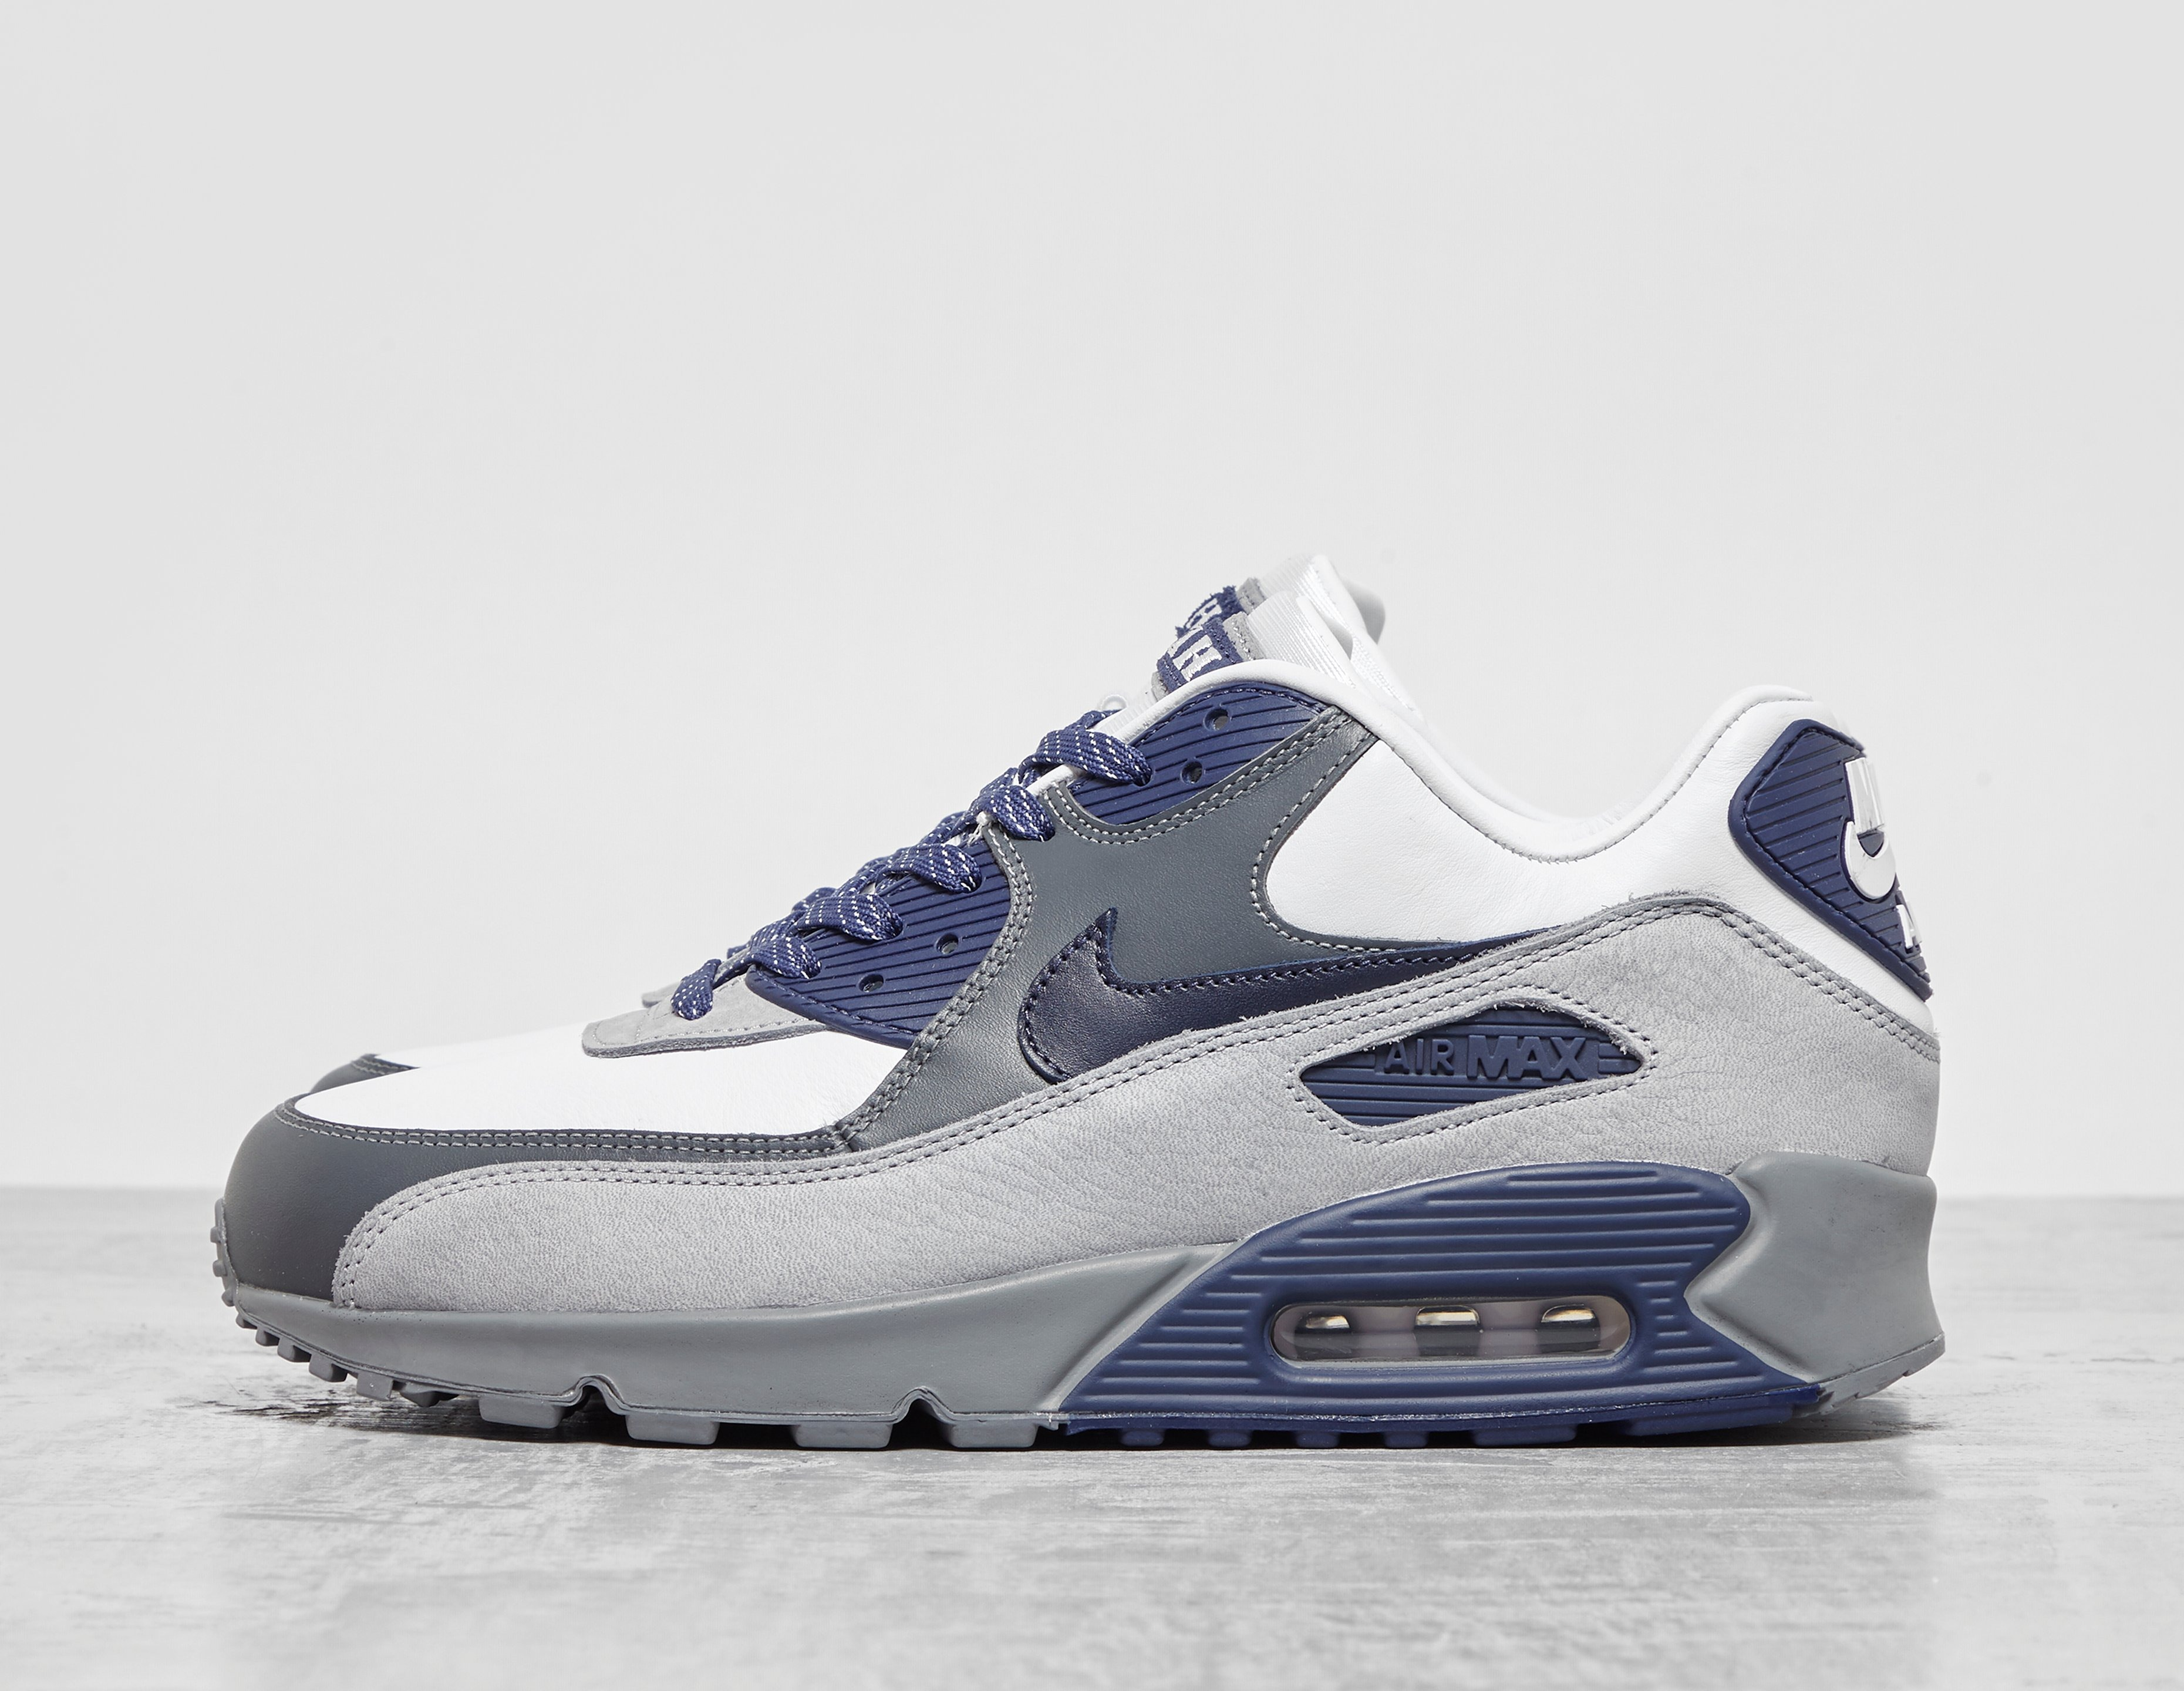 Nike Air Max 90 NRG 'Lahar Escape' Blue White Grey Men's Trainers All Sizes